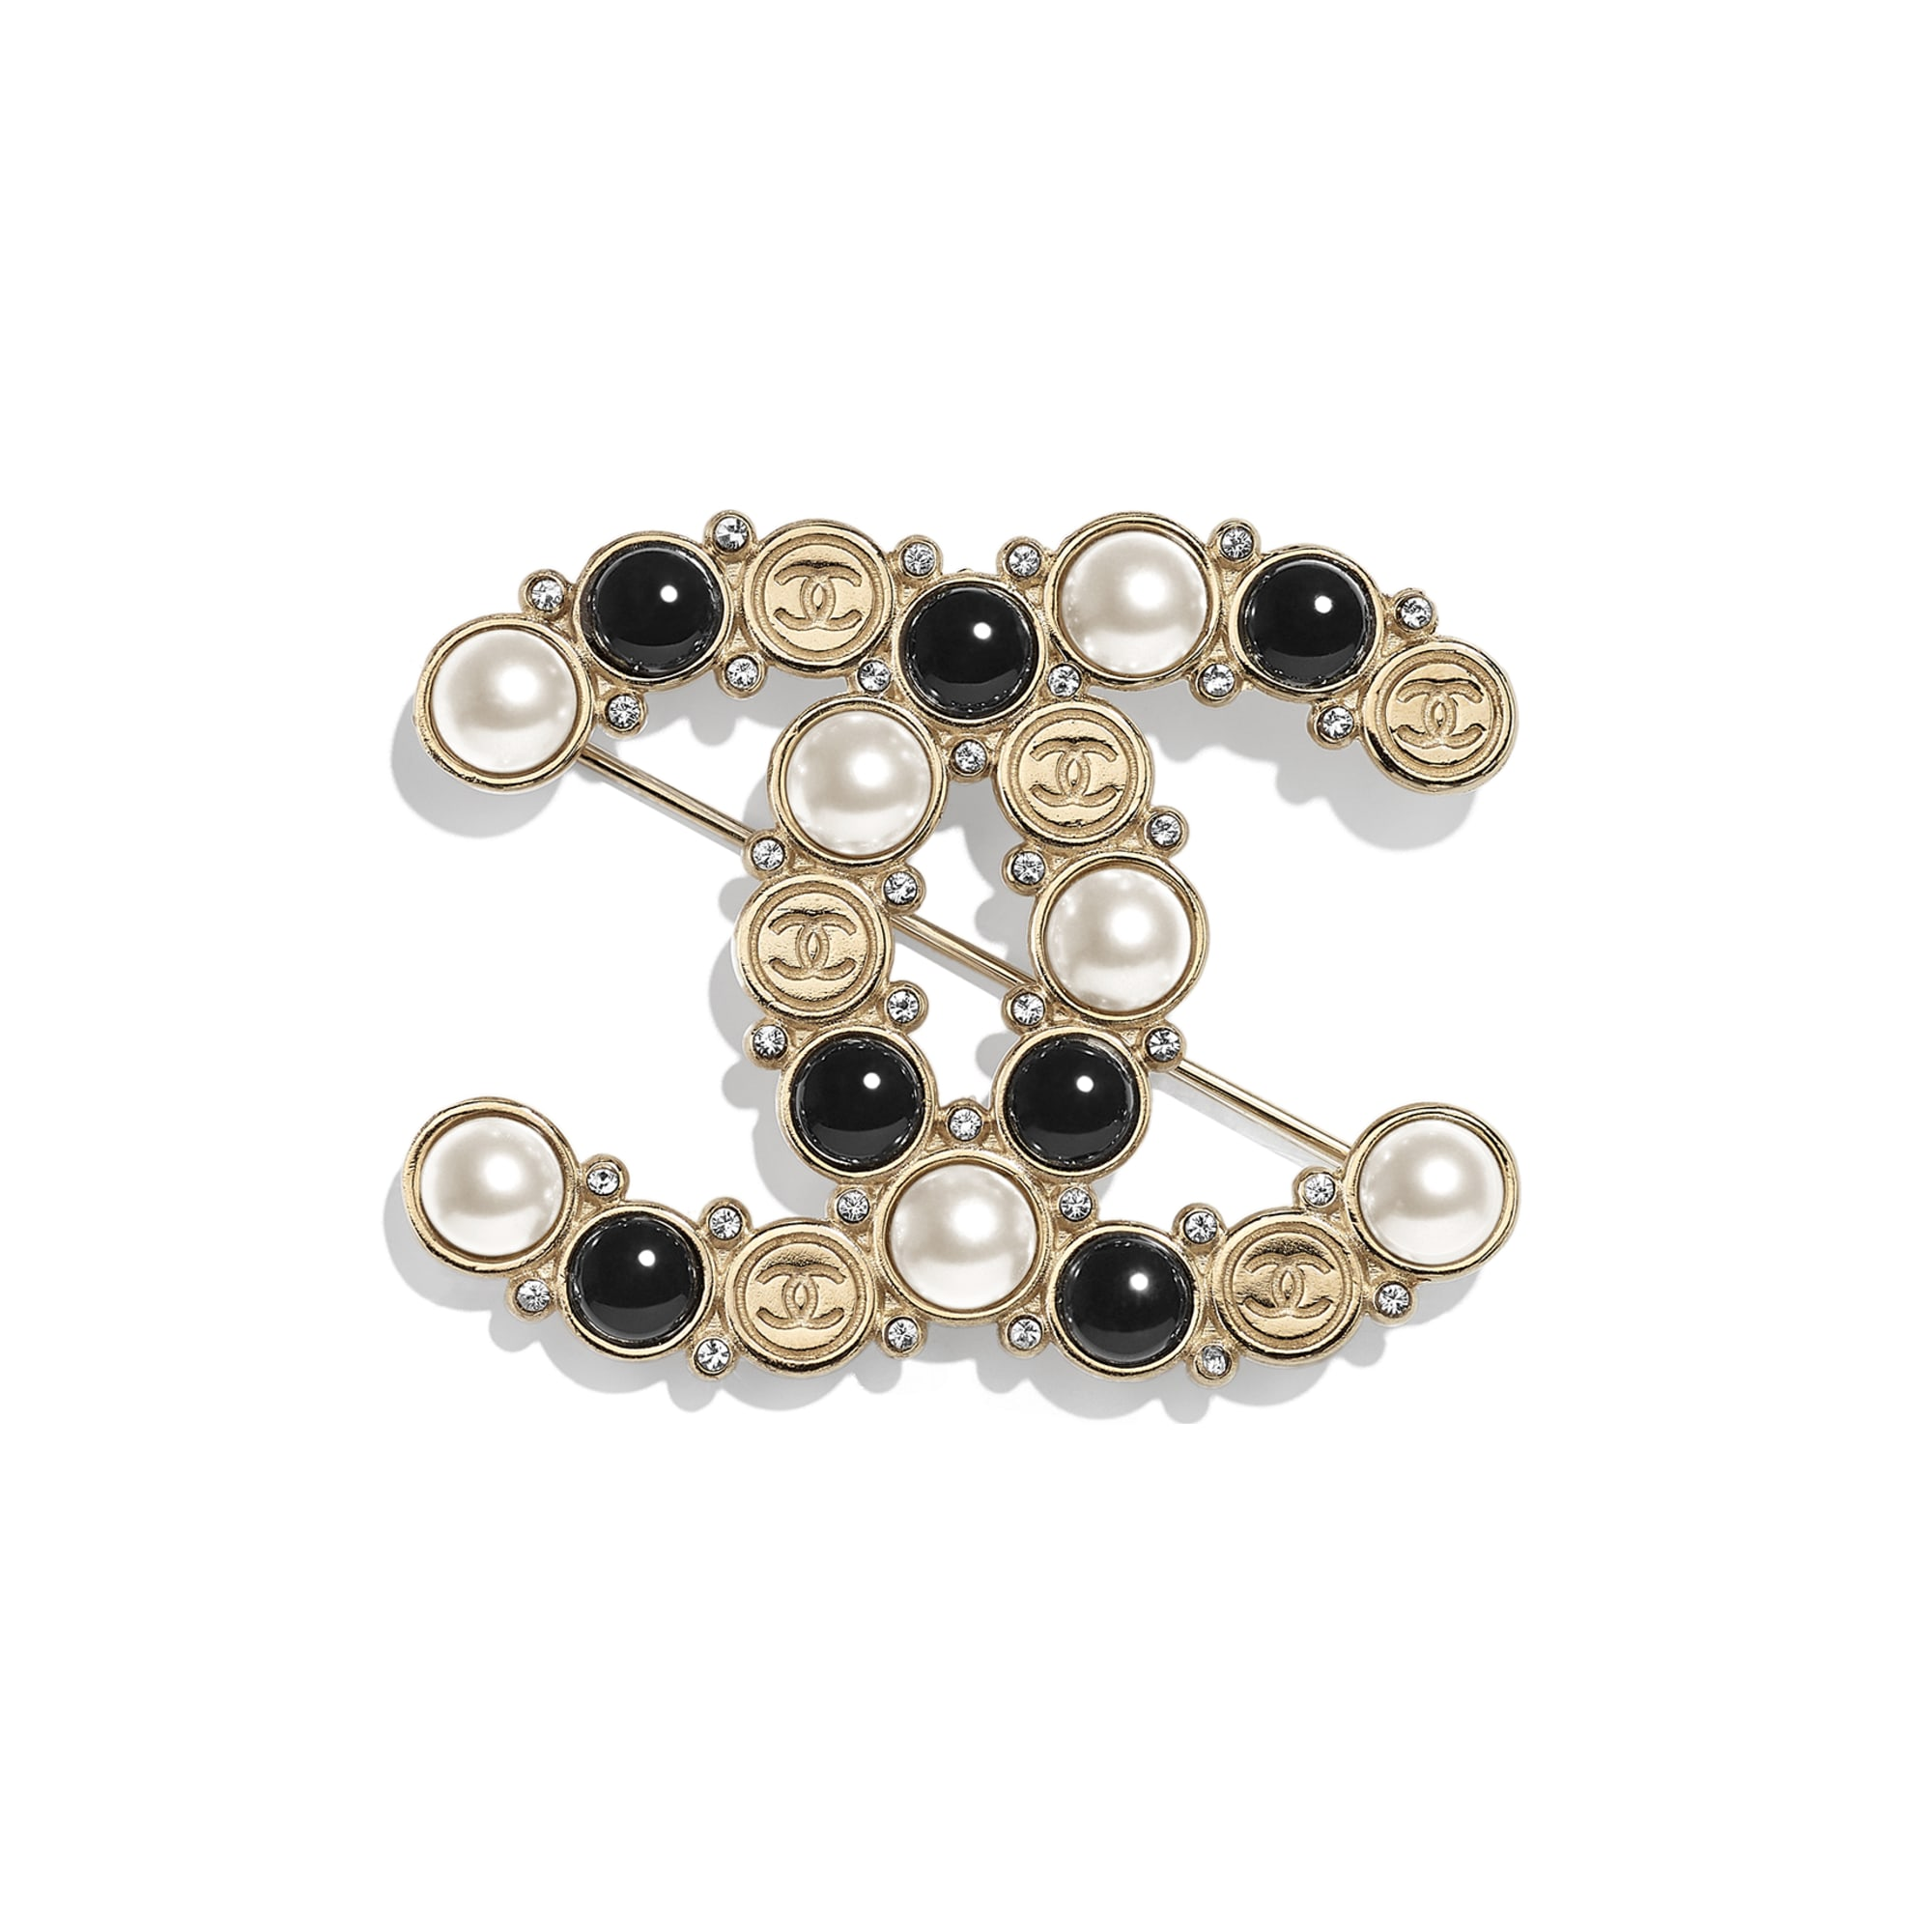 Brooch - Gold, Pearly White, Black & Crystal - Metal, Glass Pearls, Imitation Pearls & Diamanté - CHANEL - Default view - see standard sized version